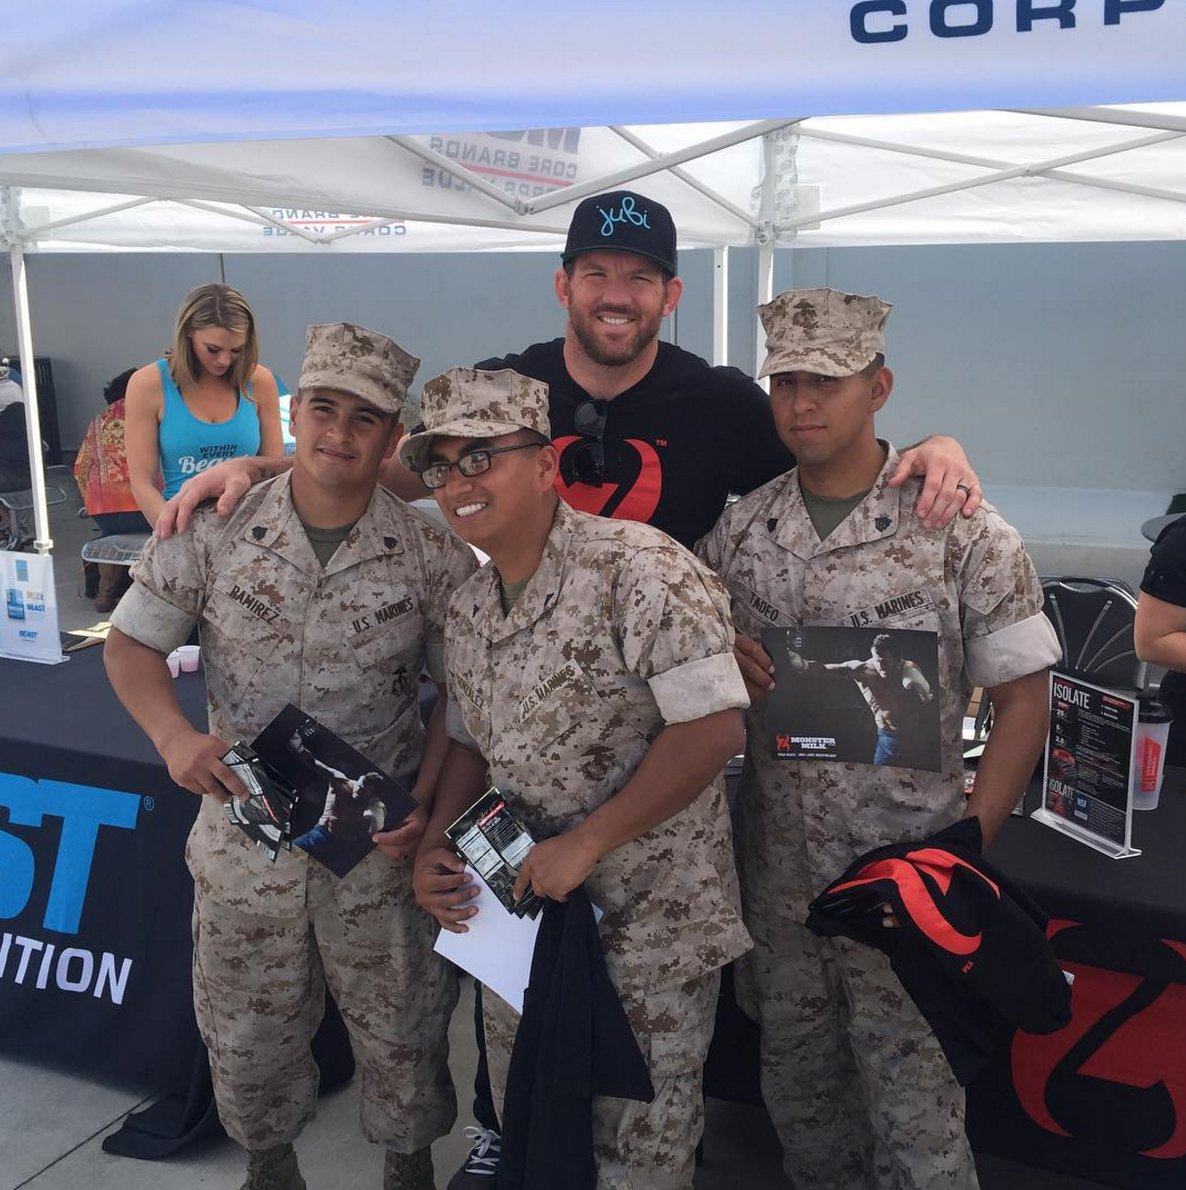 Great article on how @ryanbader honors our military: bit.ly/1sHftr3 @ufc @AmericanEthanol @BrianStann